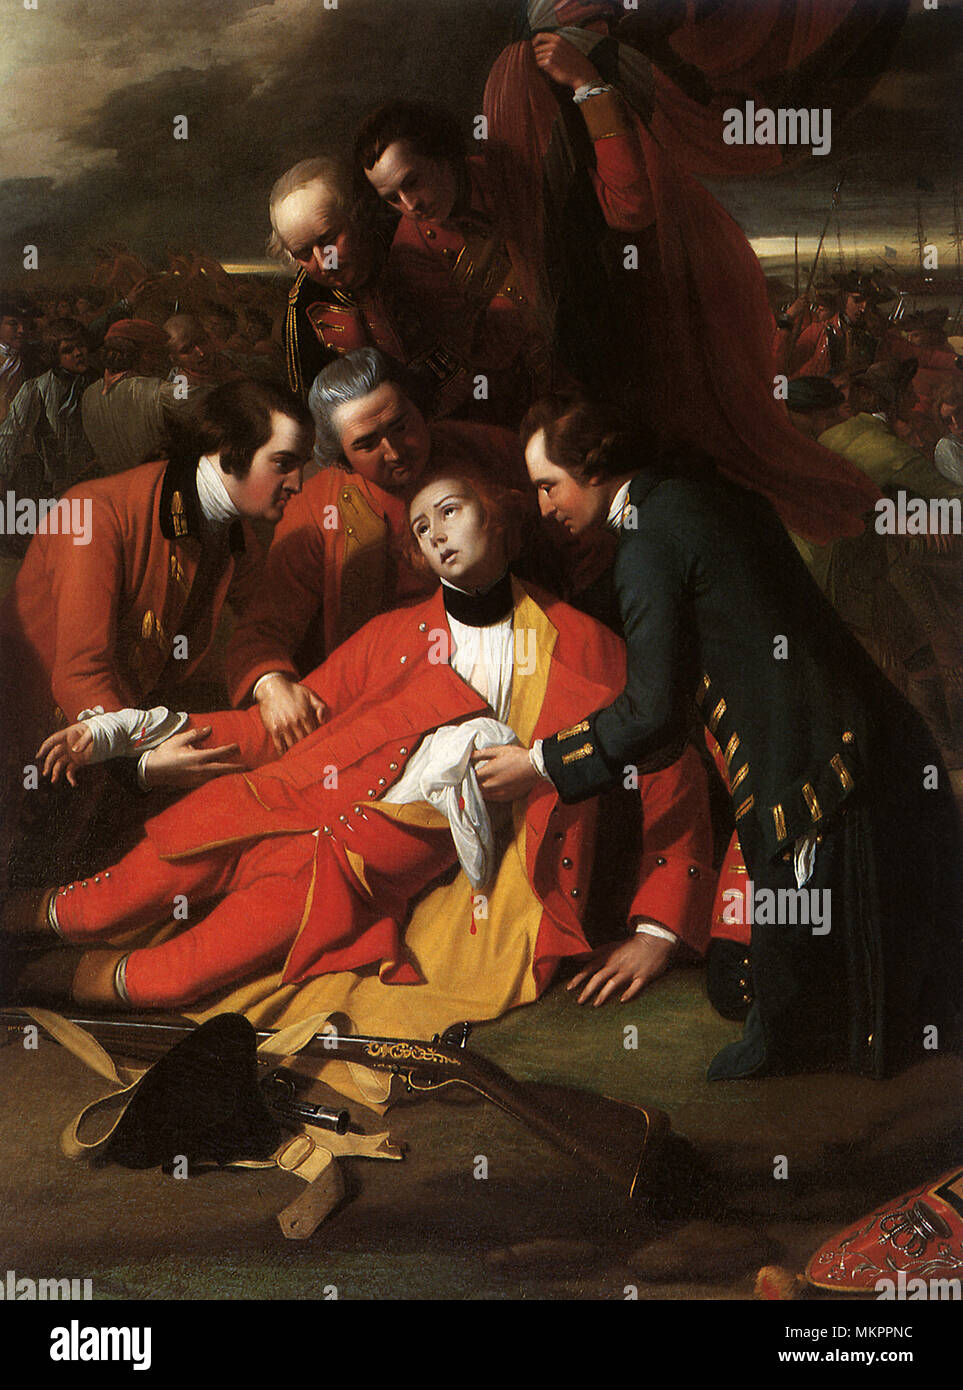 The Death of General Wolfe 1776 - Stock Image